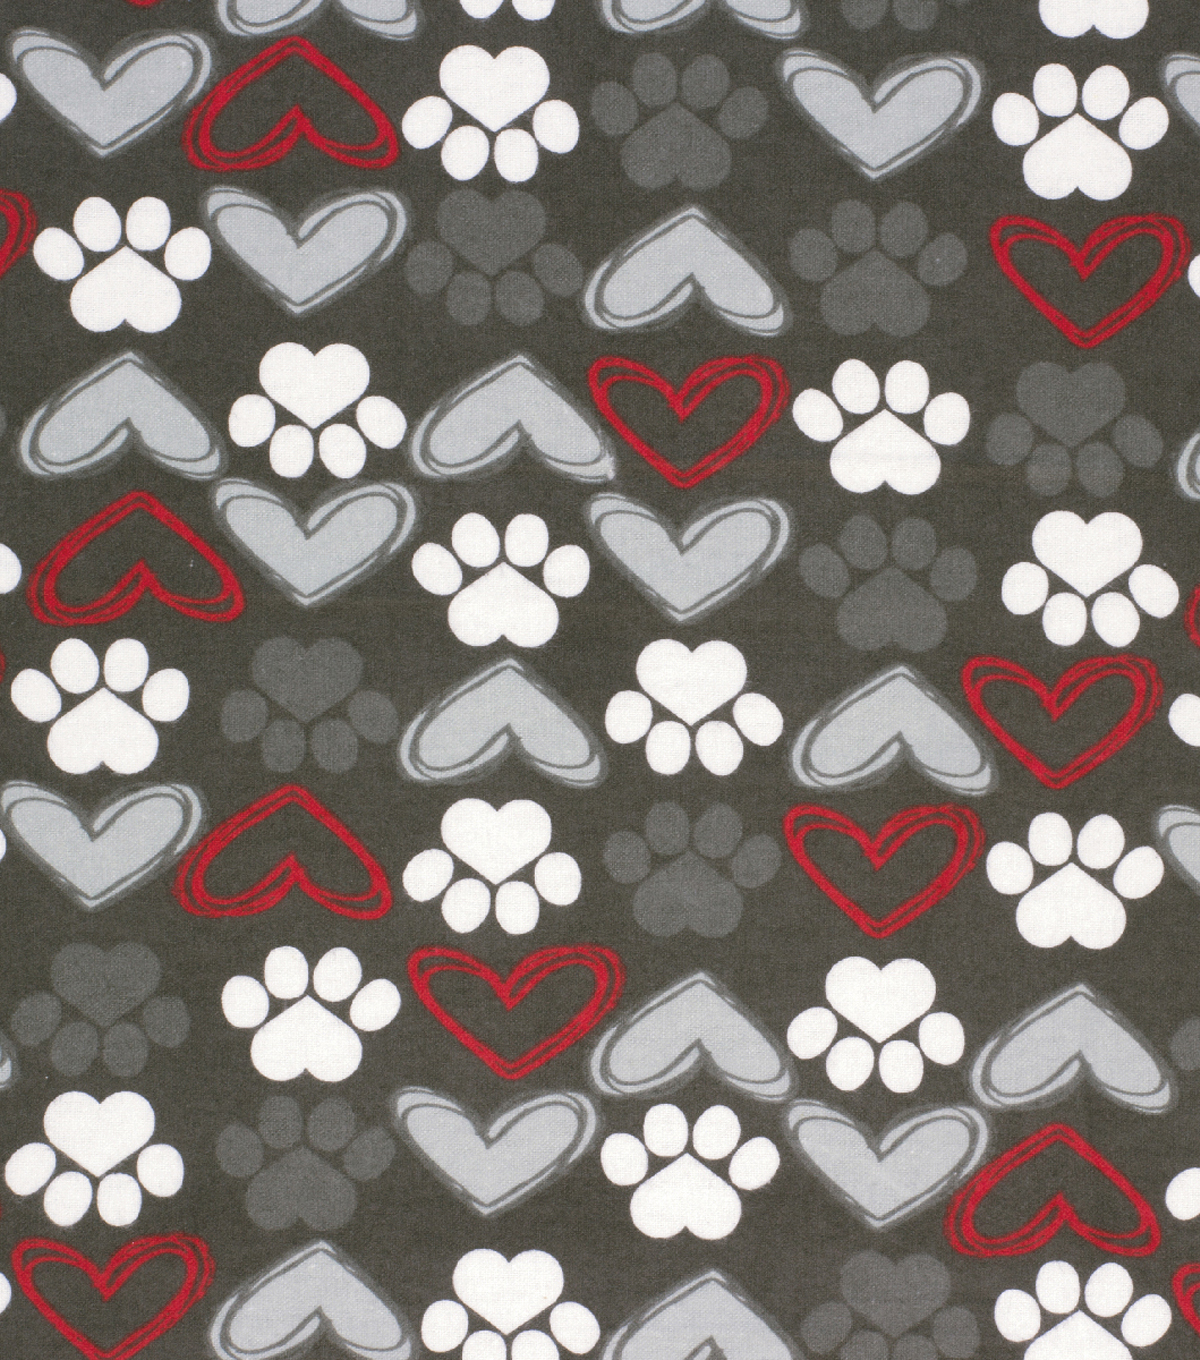 Super Snuggle Flannel Fabric-Sketched Hearts & Paws Coral and Mint